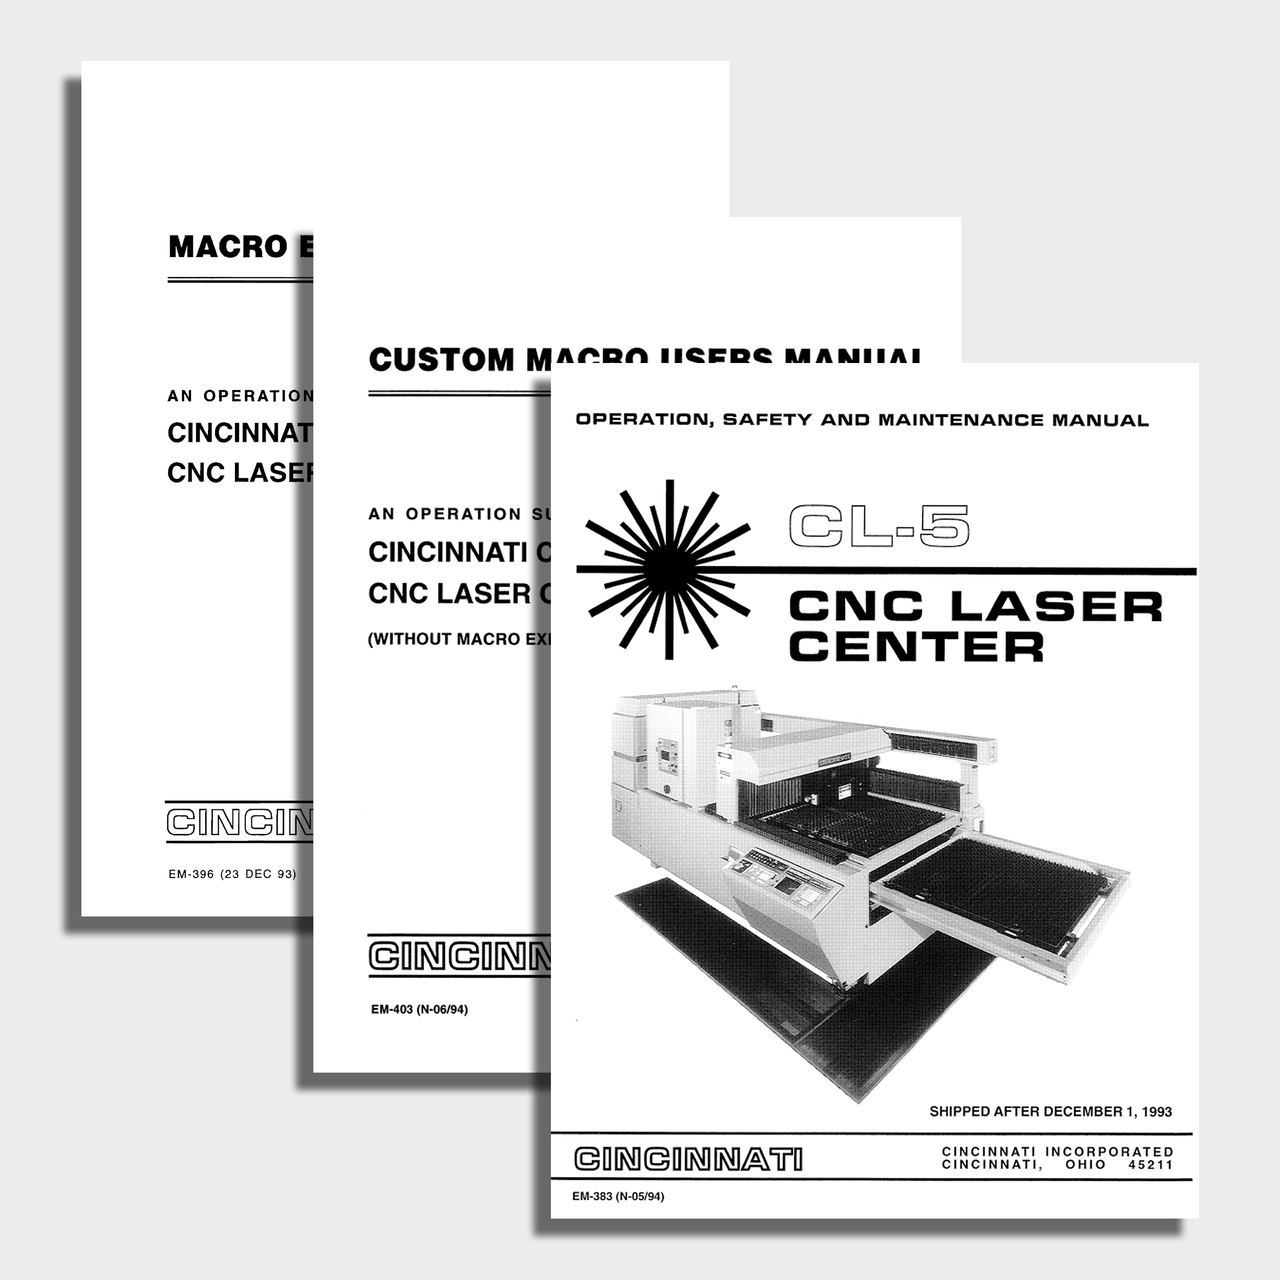 CL5 CNC Laser Center Manual Bundle